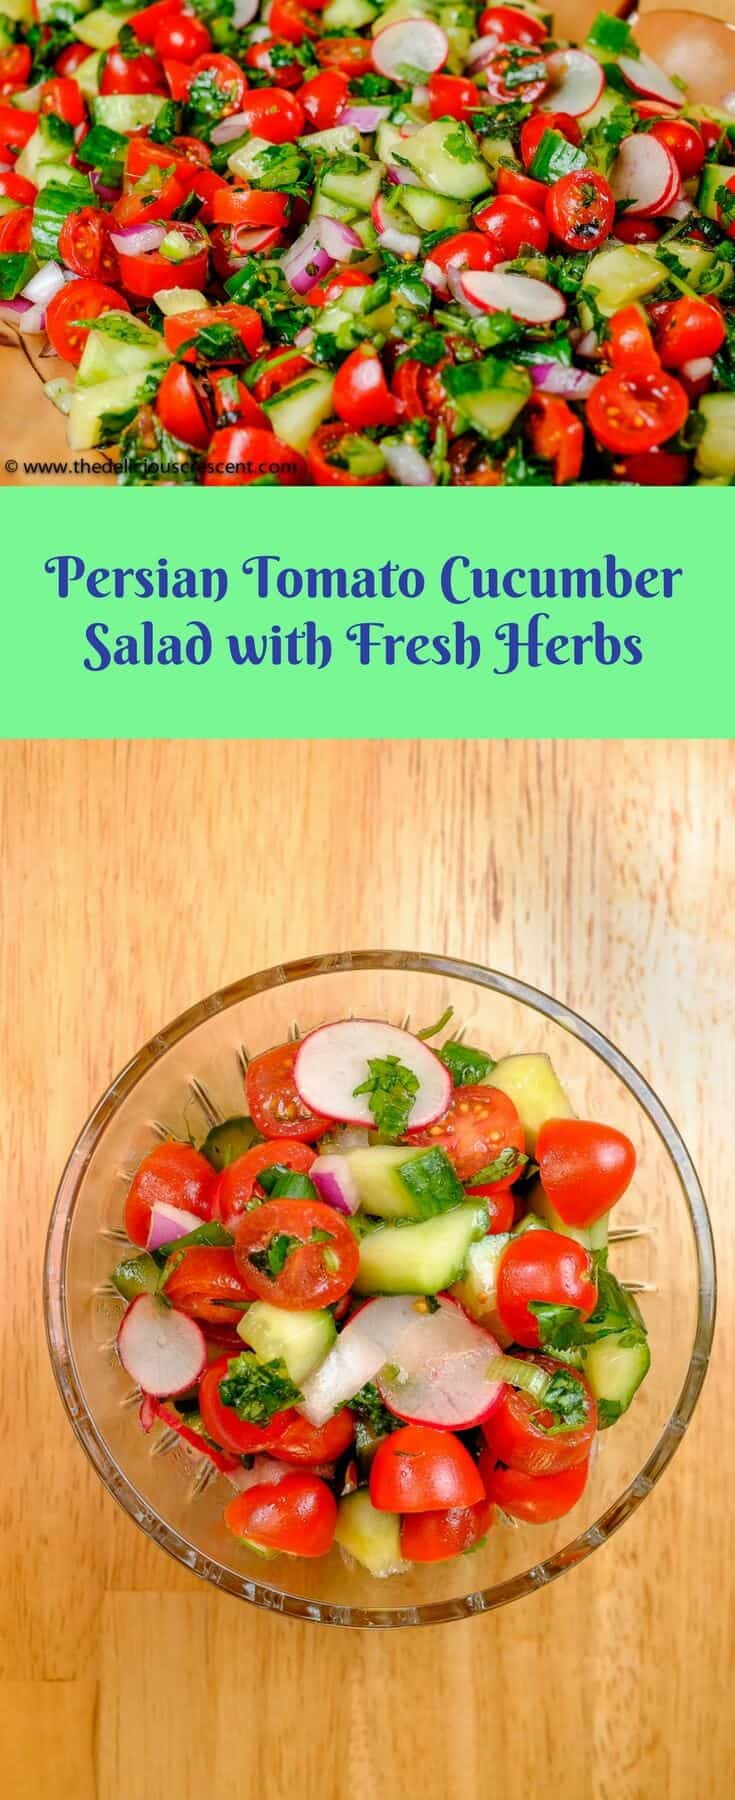 Tomato cucumber salad with fresh herbs is a variation of the popular Persian Salad Shirazi. This refreshing, easy, healthy, low calorie, low carb, crisp and flavorful salad is a total winner! #salad #Persian #tomatoes #glutenfree #lowcarb #cucumber #dairyfree #eggfree #nutfree #quickandeasy #vegan